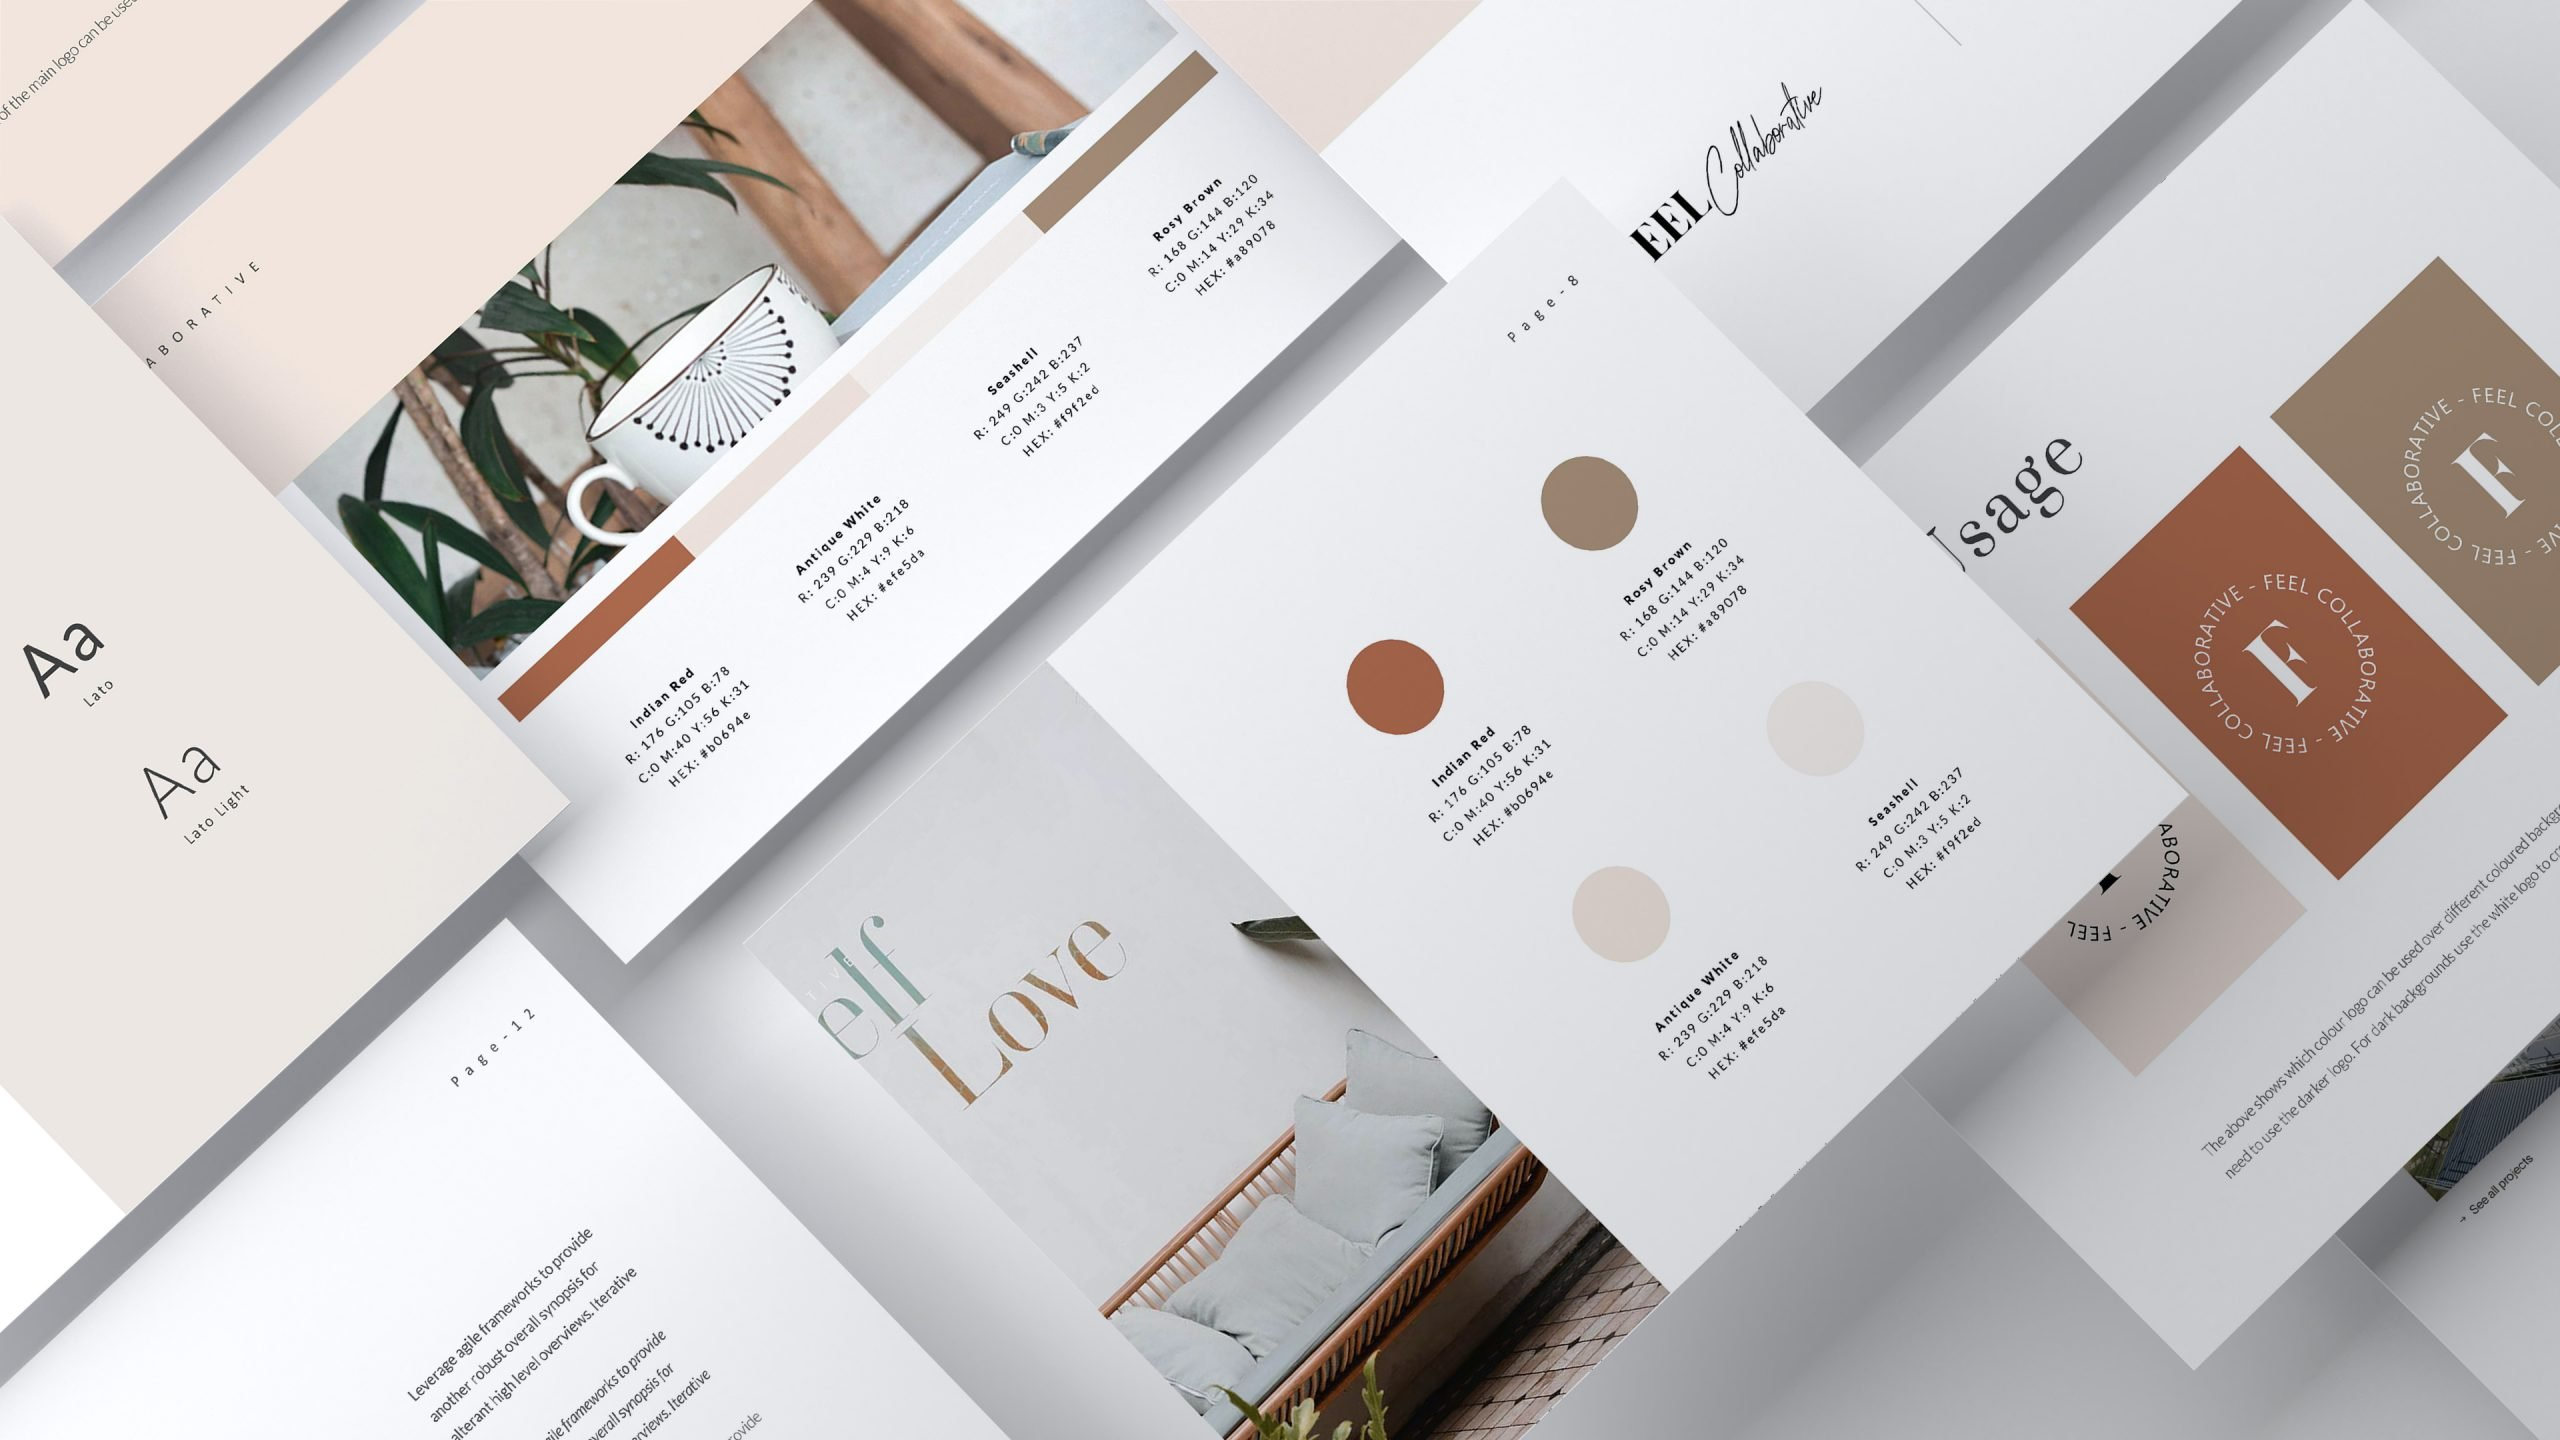 feel-collaborative-branding-typography-neutral-palette